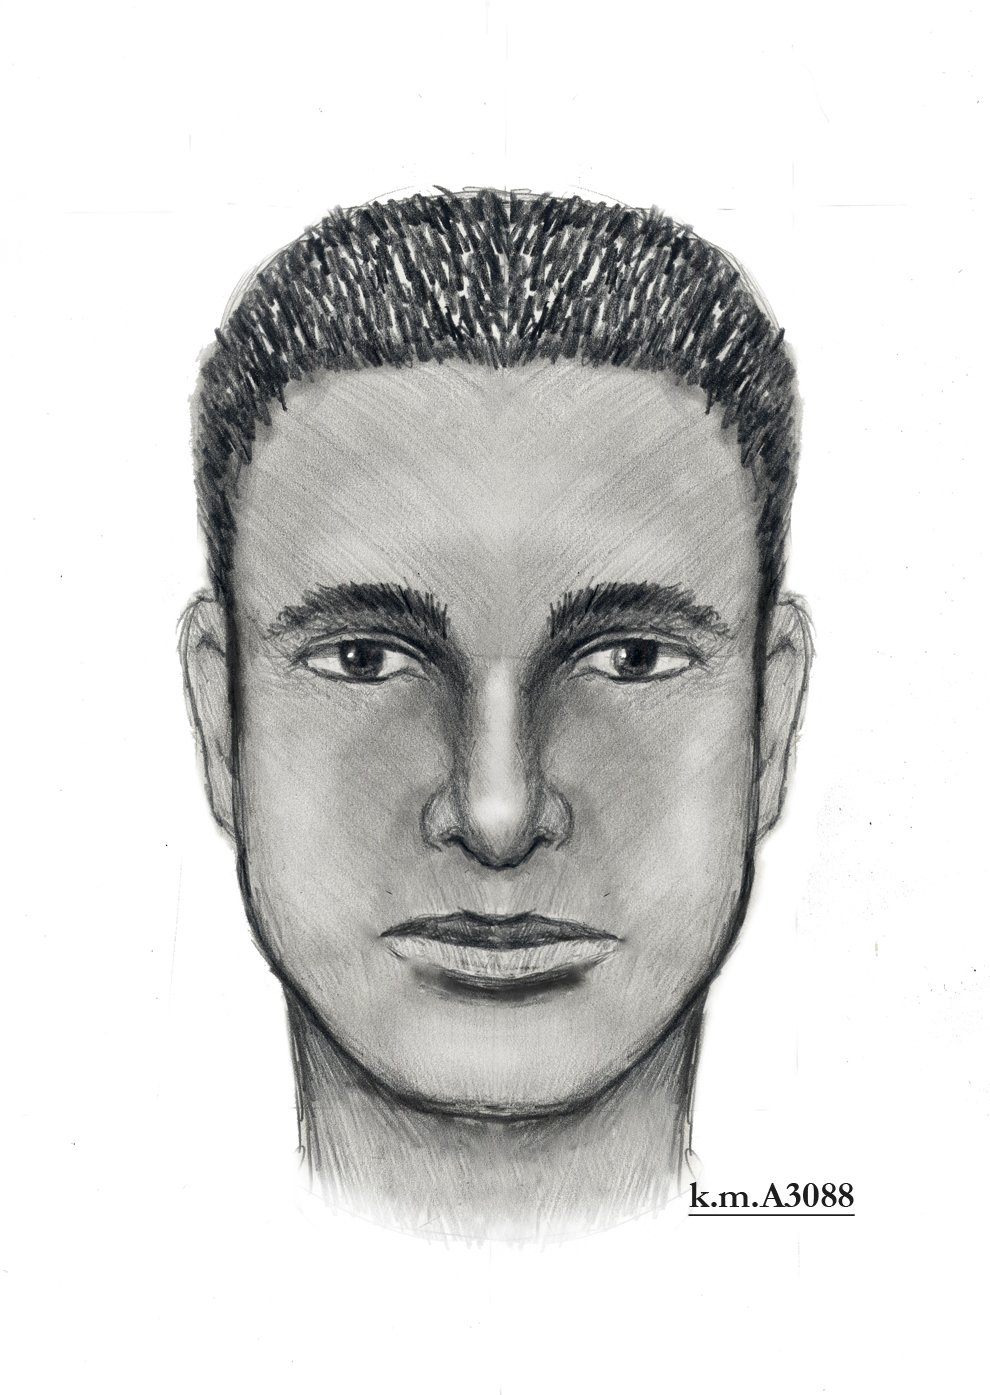 Phoenix police said the witness was able to provide enough information to a forensic artist to create this composite drawing. (Source: Phoenix Police Department)